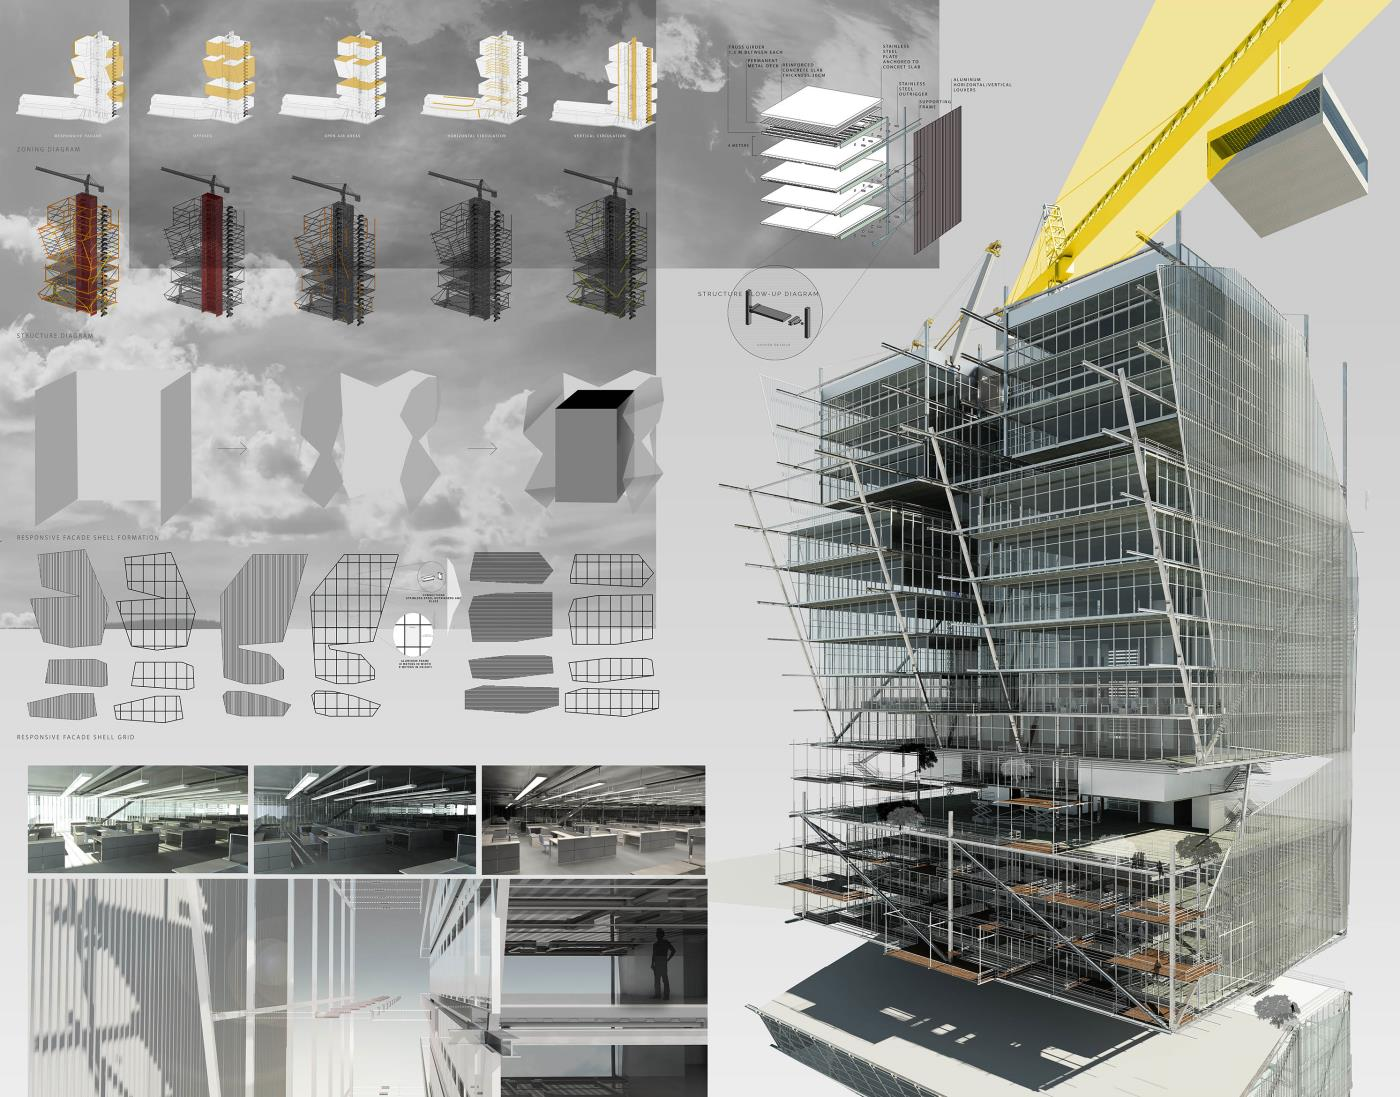 The Unprocessed: Design Office Building